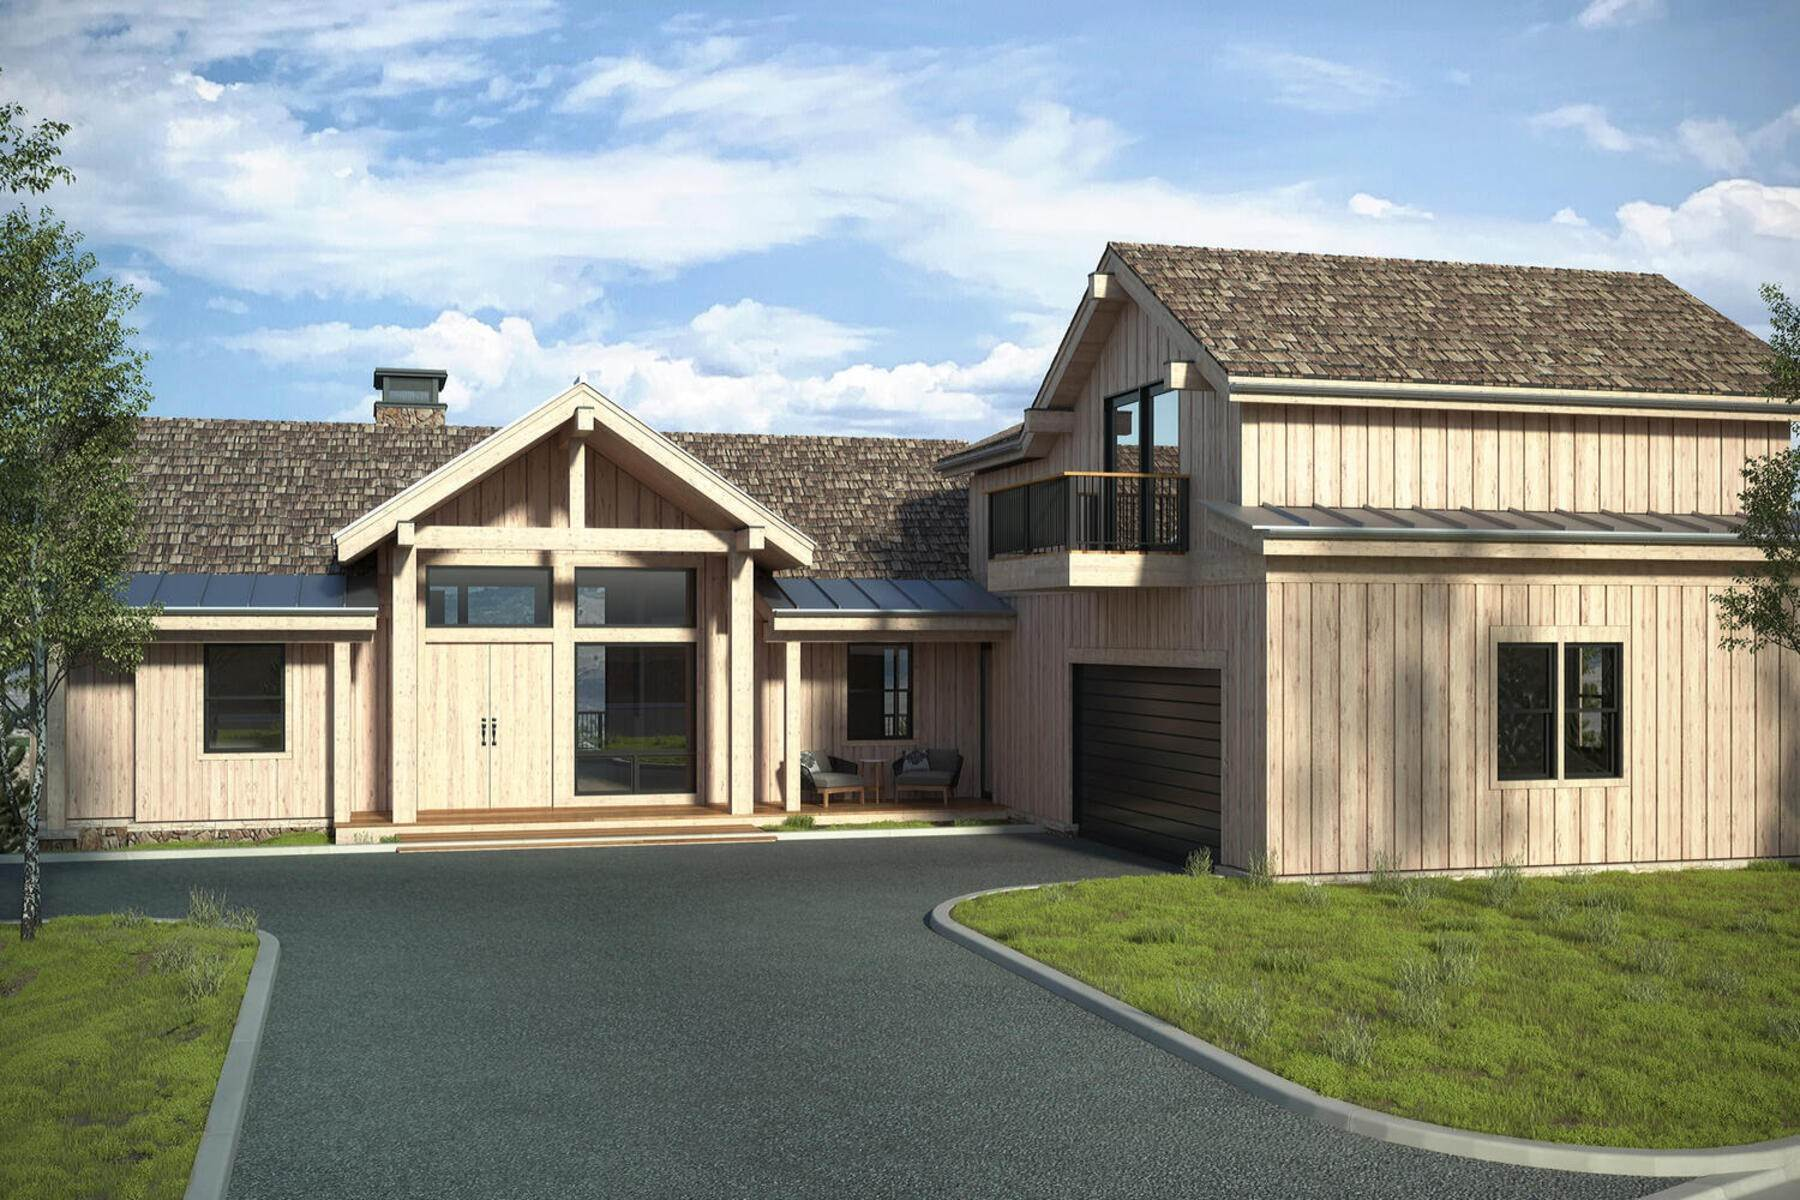 2. fractional ownership prop for Sale at 1/8 Fractional Ownership Opportunity In Brand New Kingfisher Cabin 7615 E Stardust Court #319E, 5.13 Heber City, Utah 84032 United States